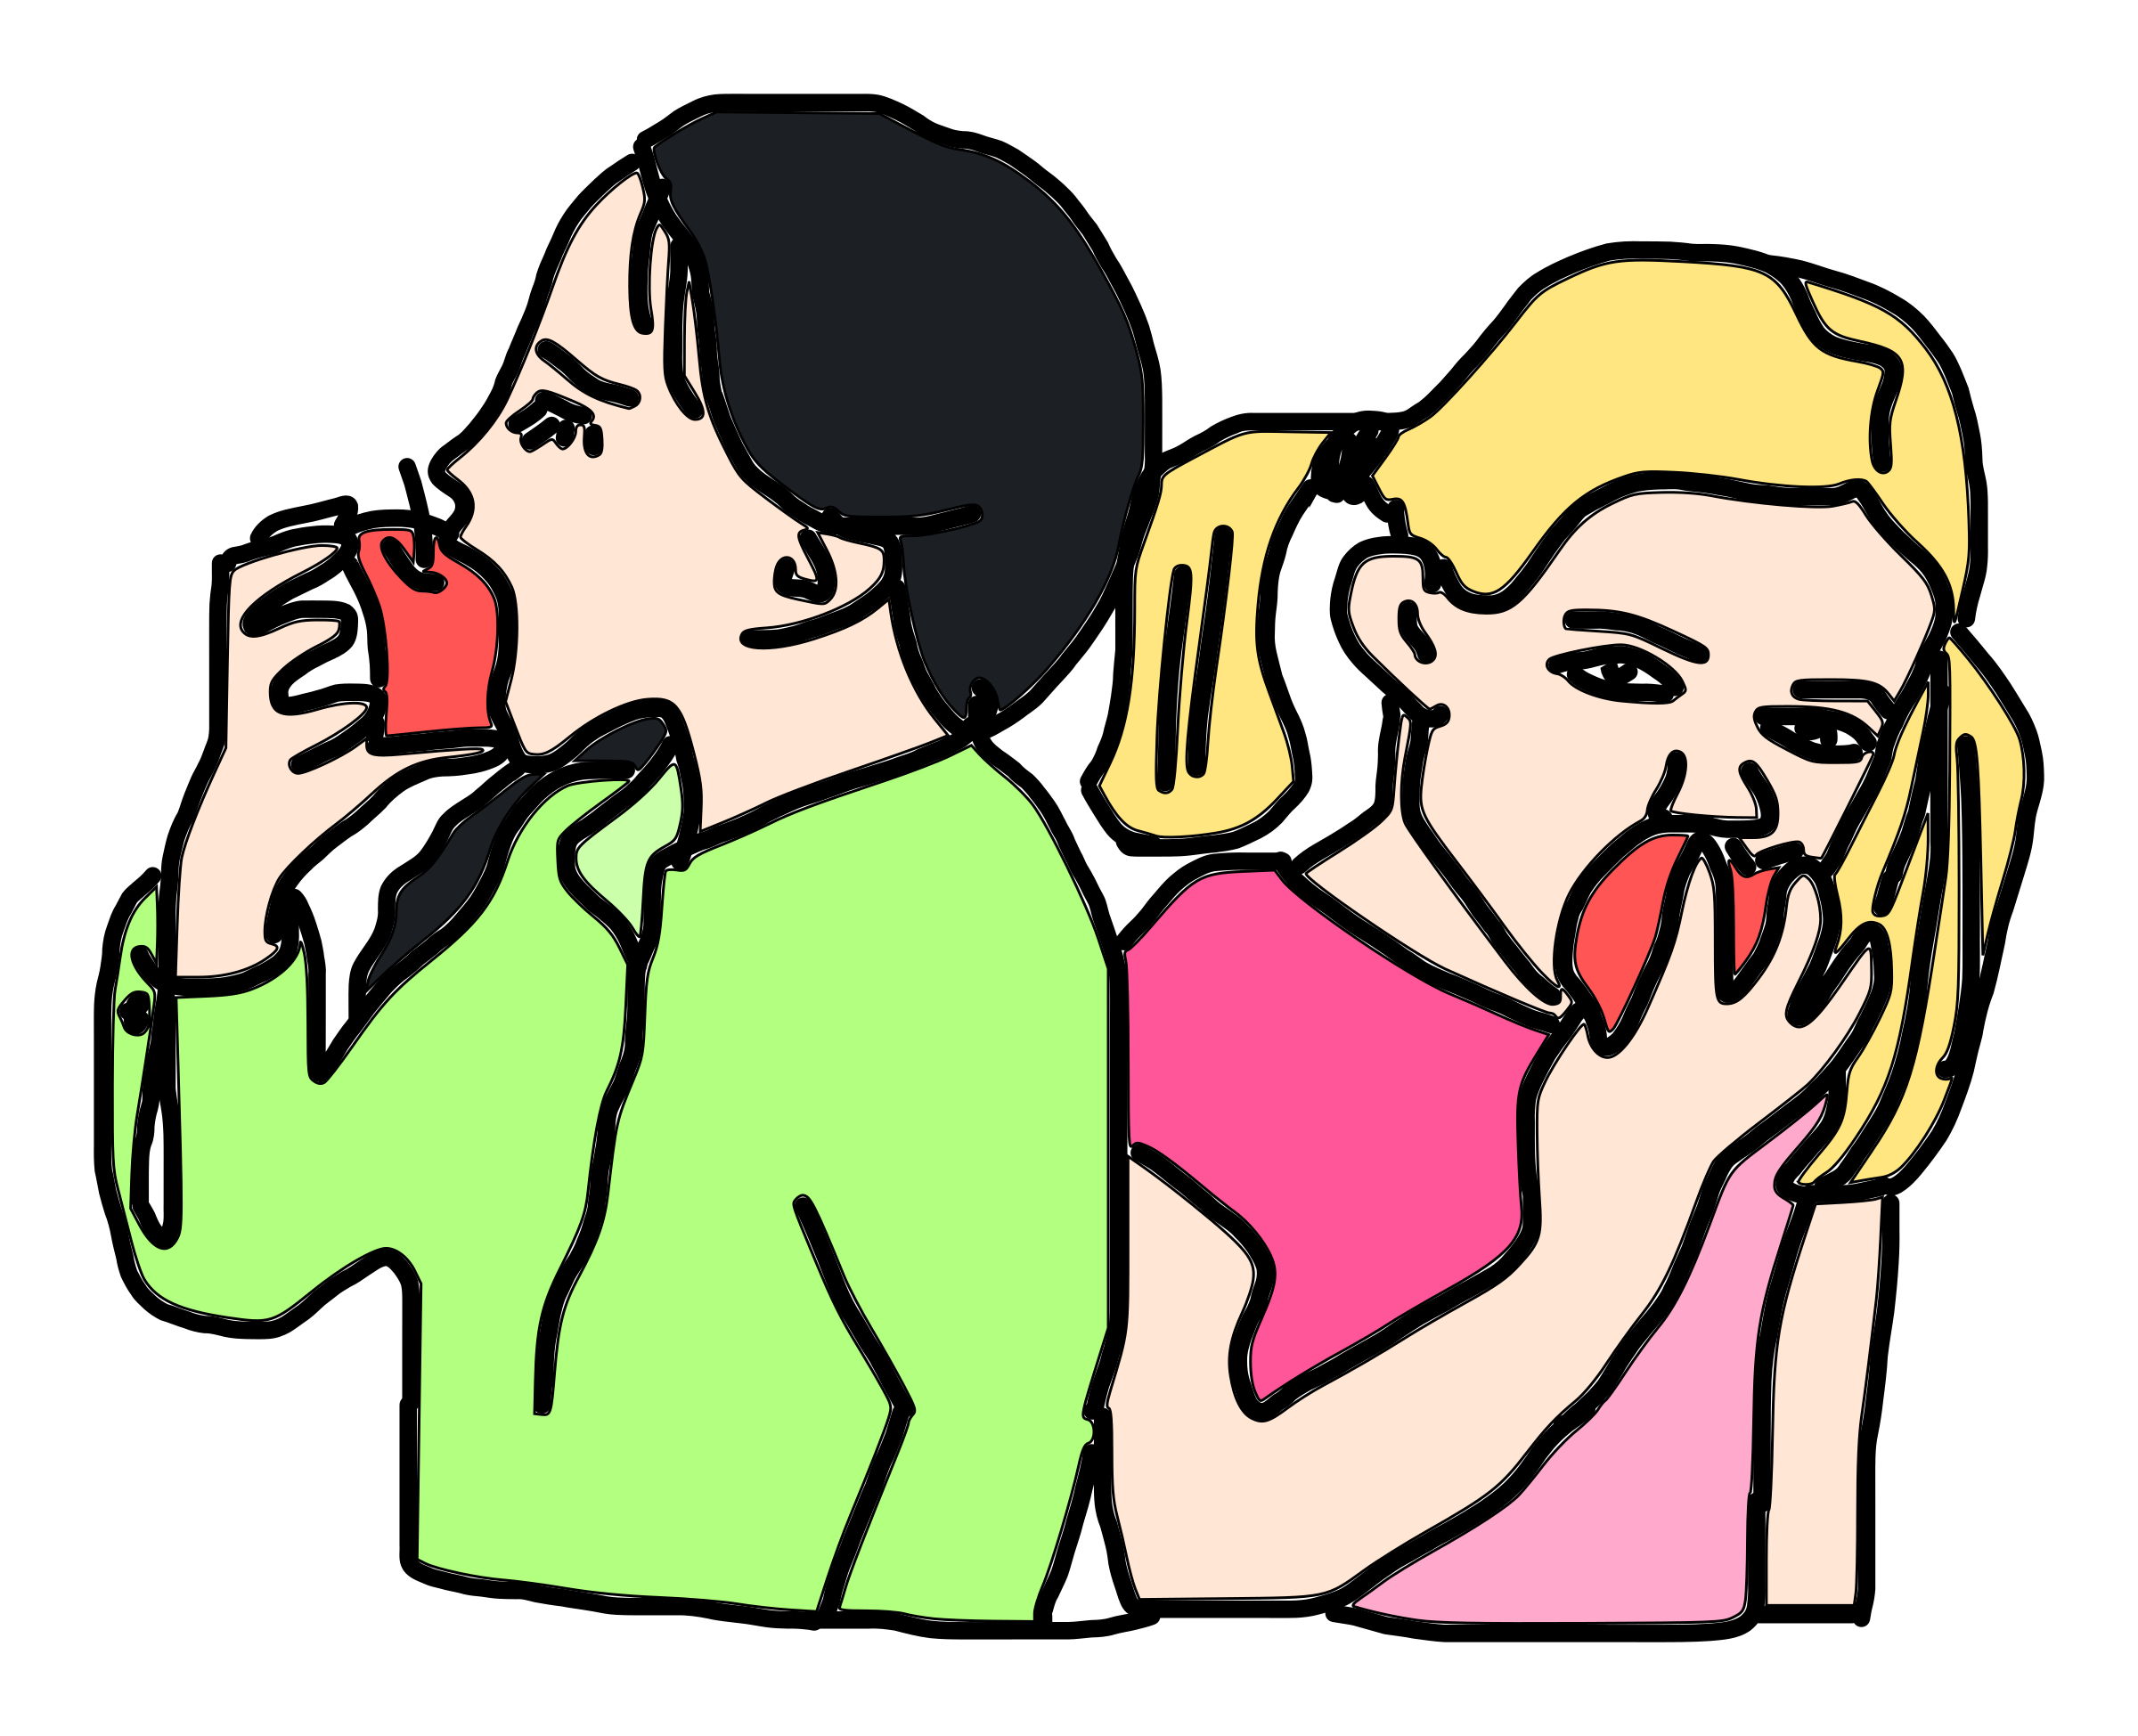 Full clipart eaten. Apple clip art eating